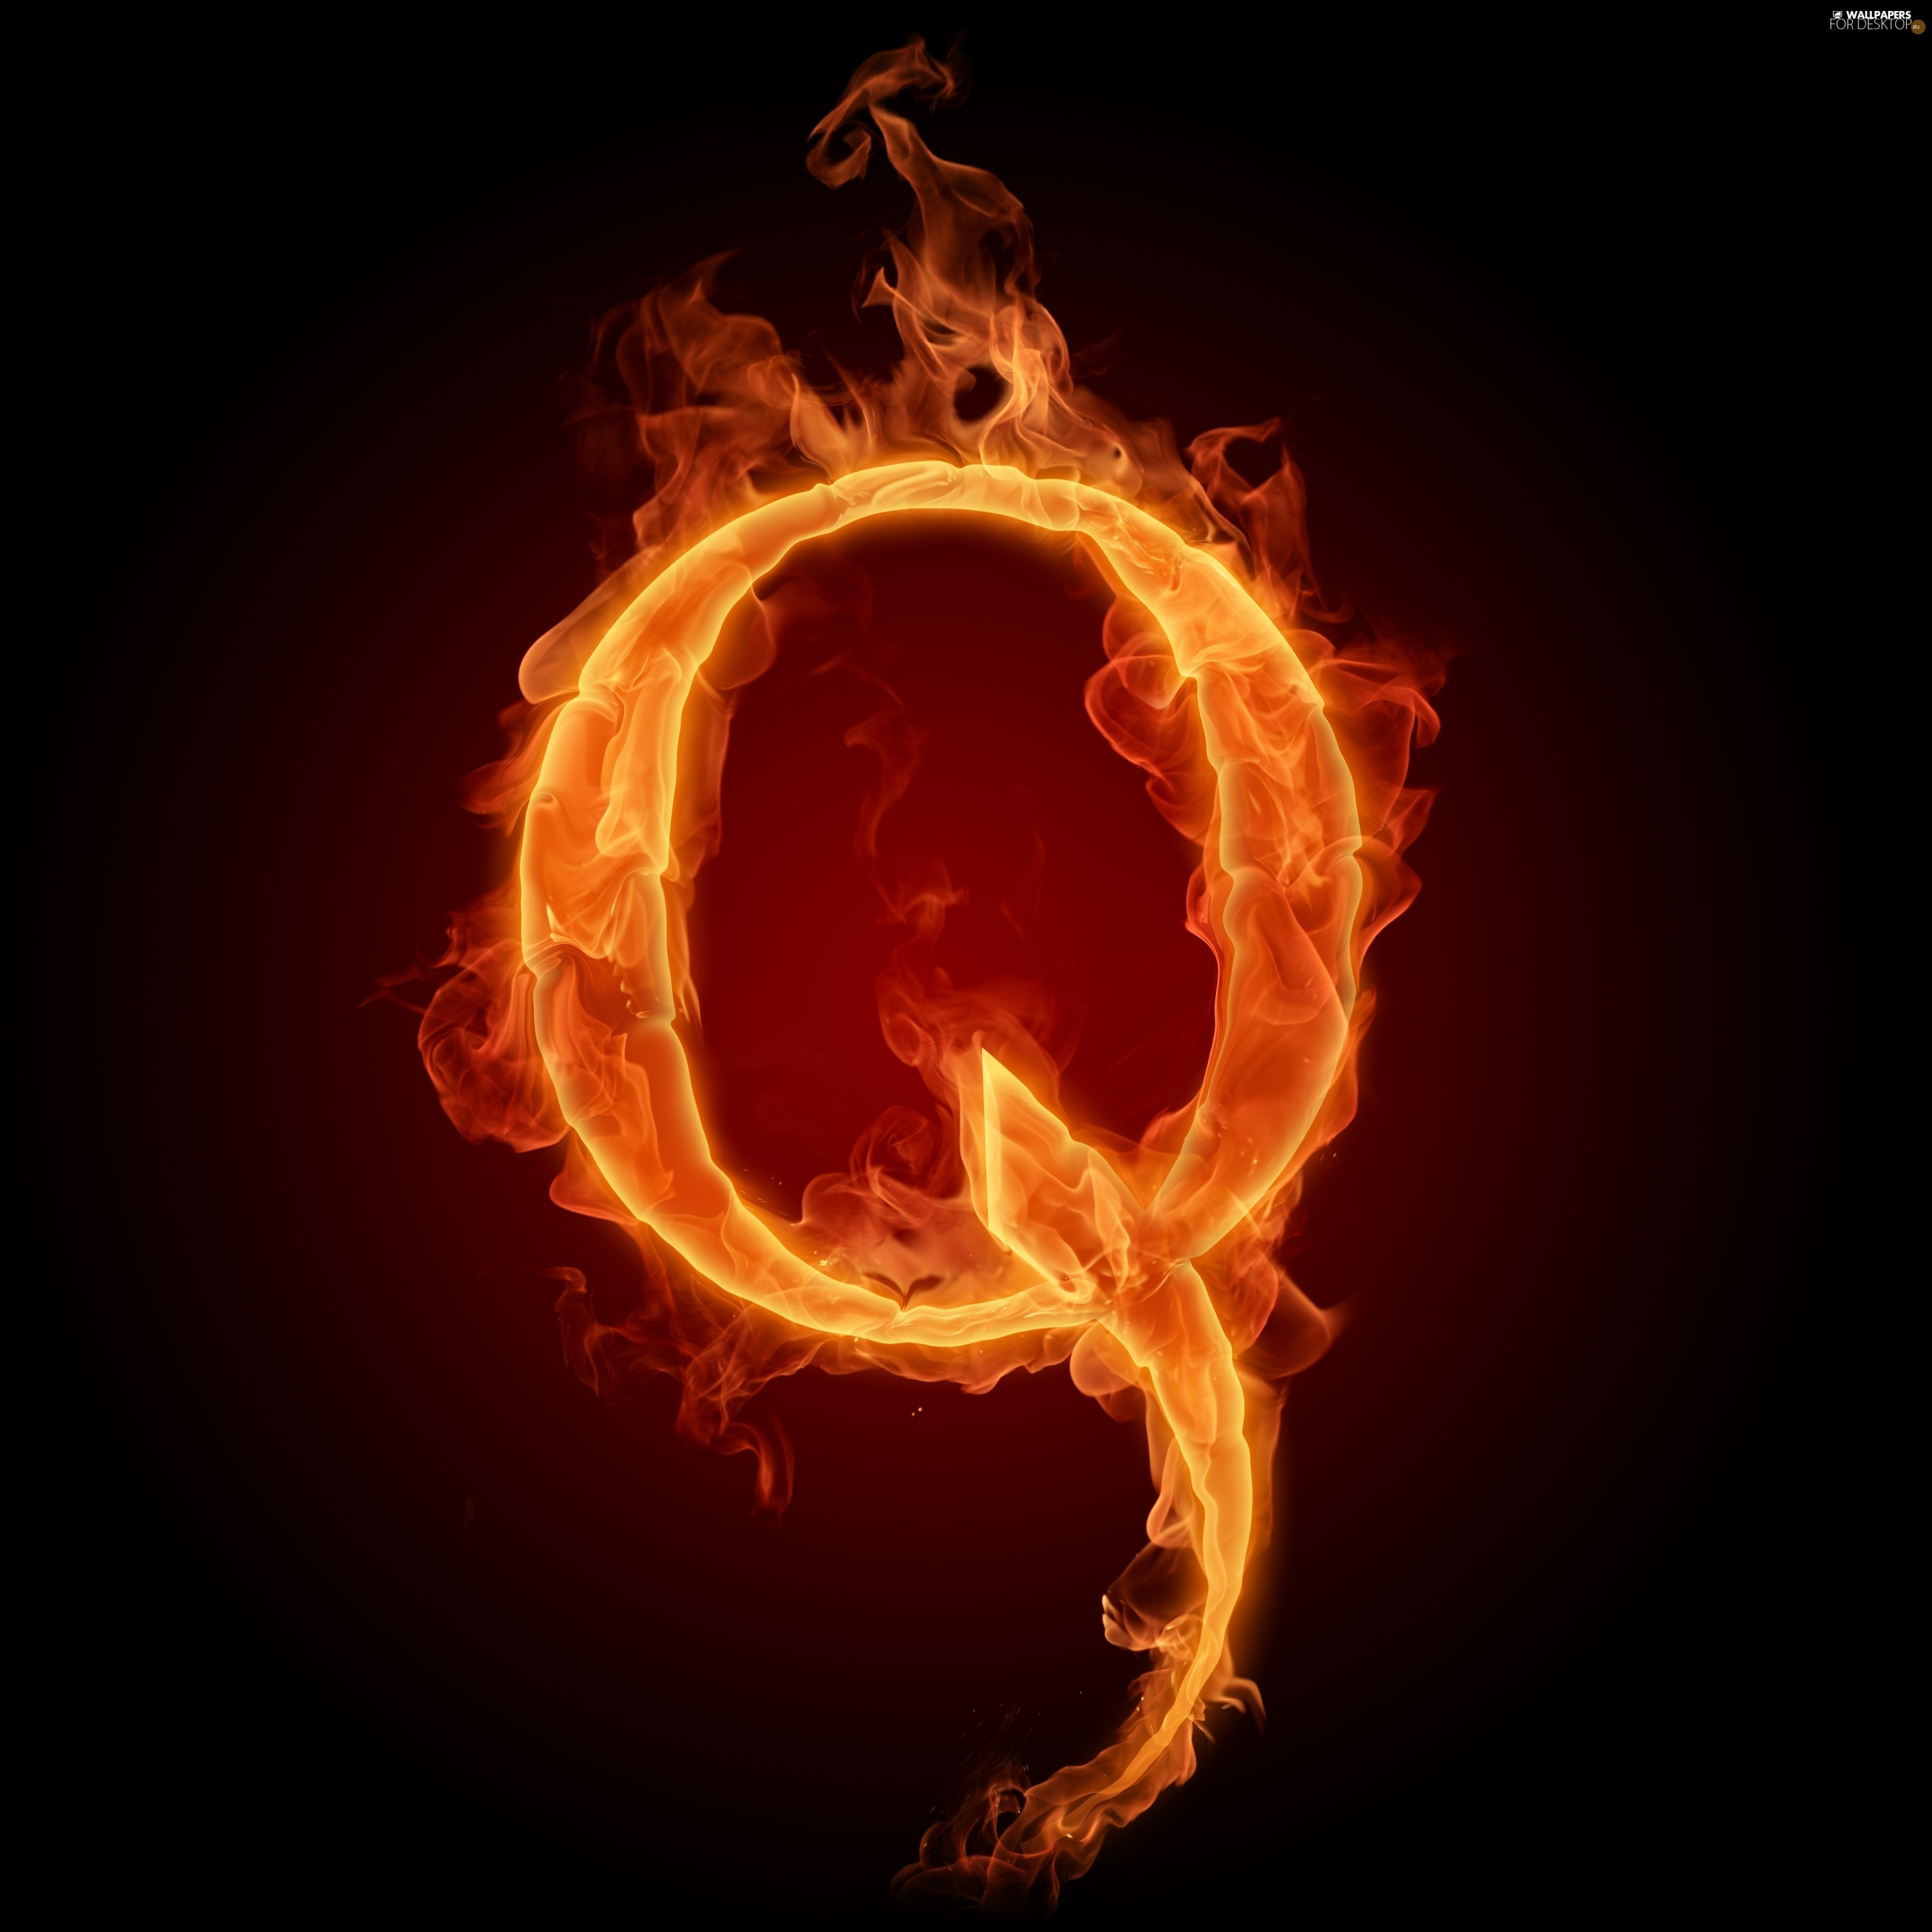 Q, Fire, letter - For desktop wallpapers: 3000x3000